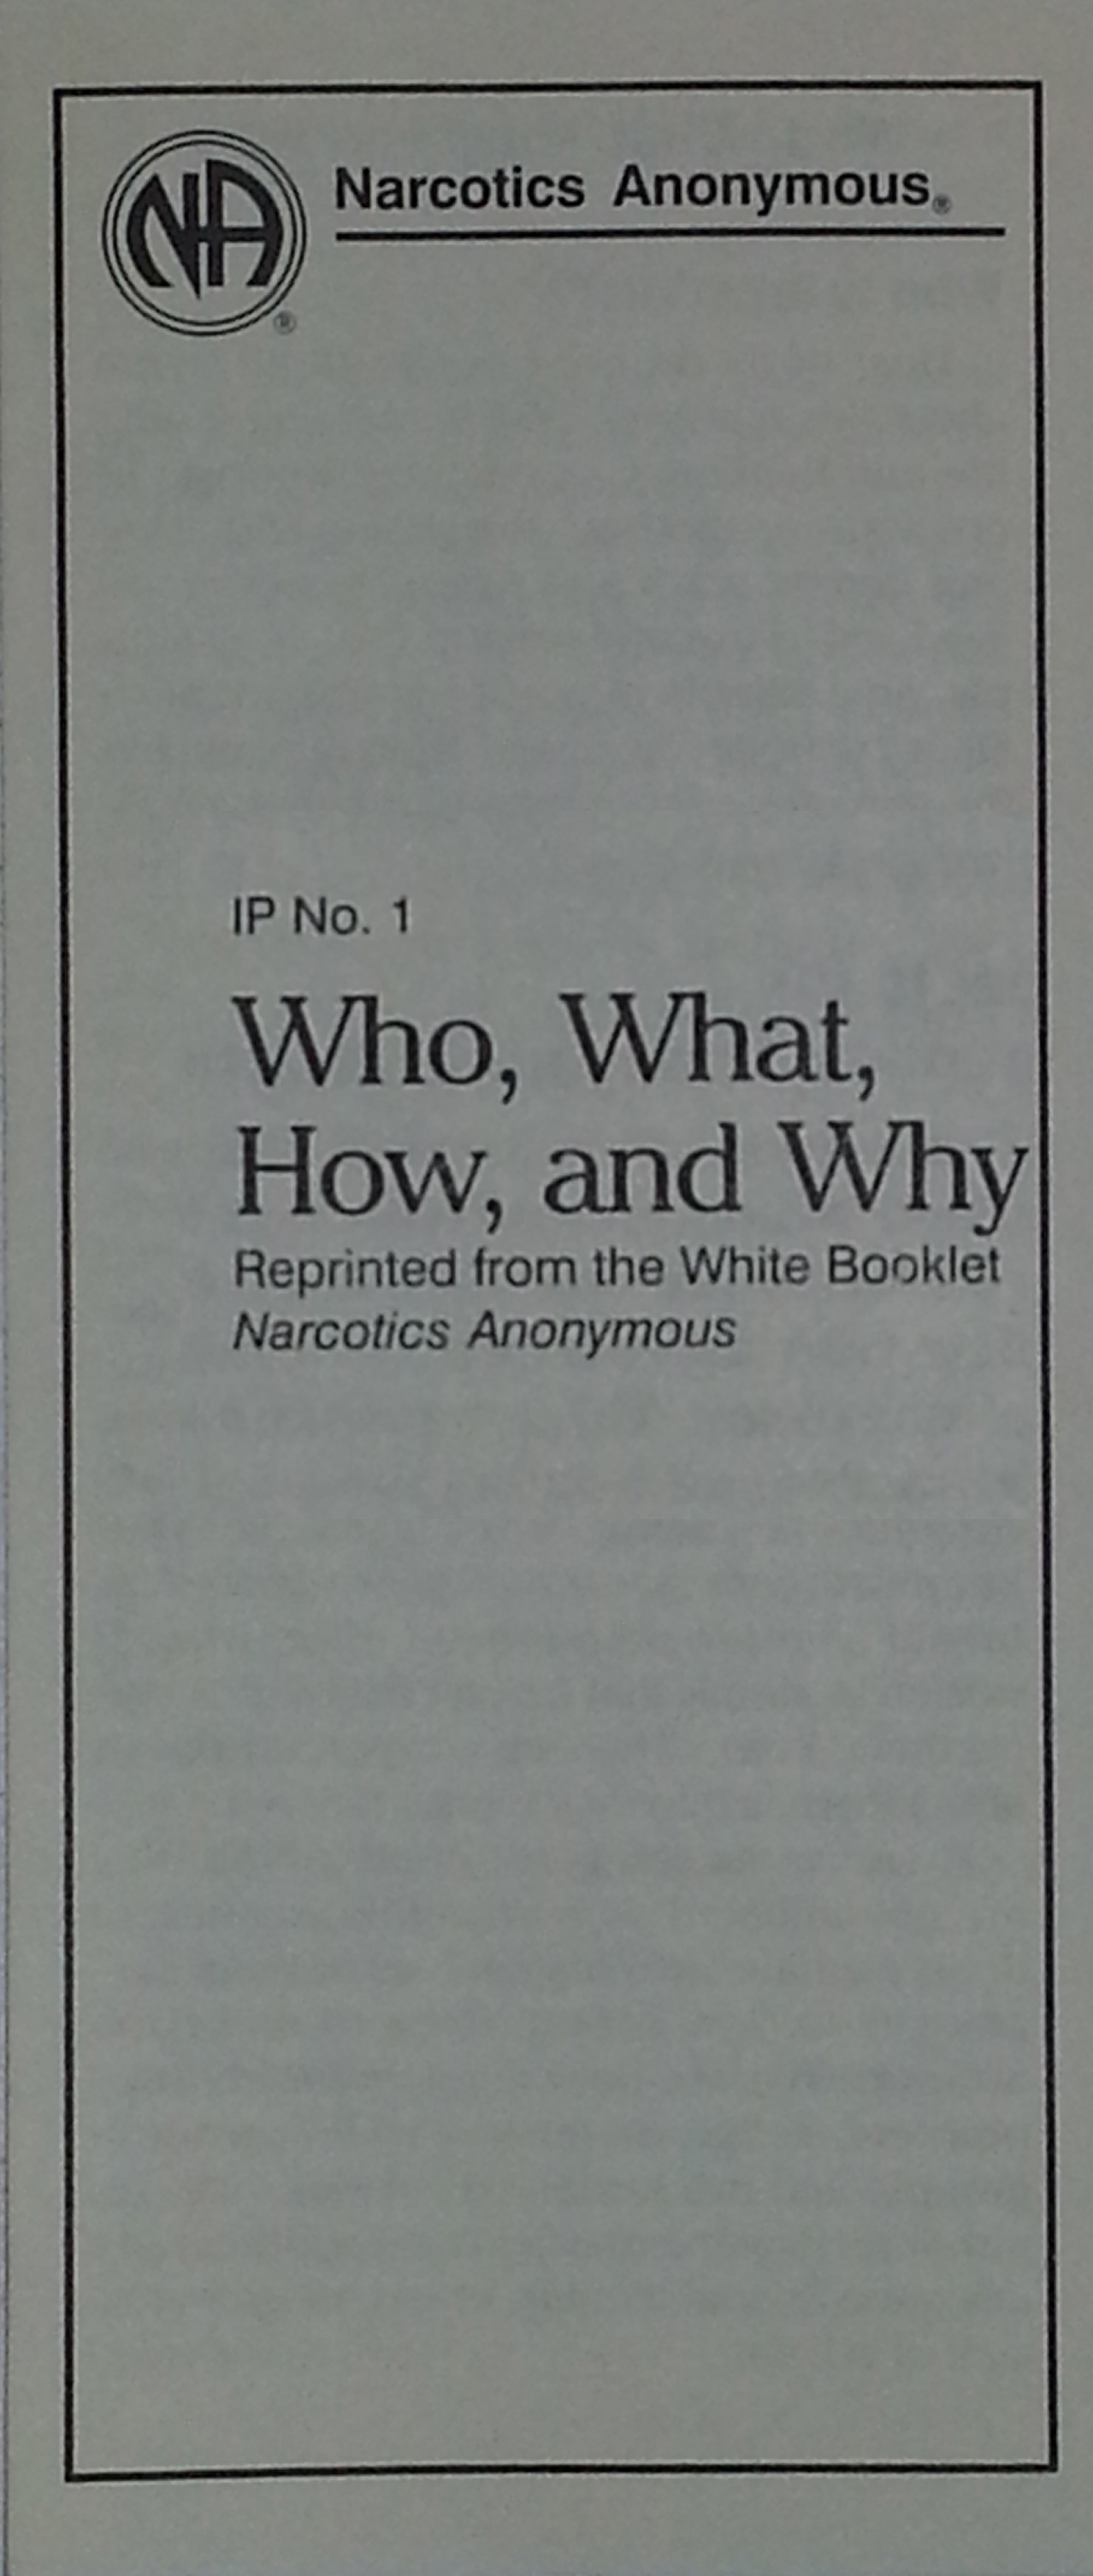 Narcotics Anonymous Information Pamphlet, IP#1 Who, What, How,         and Why